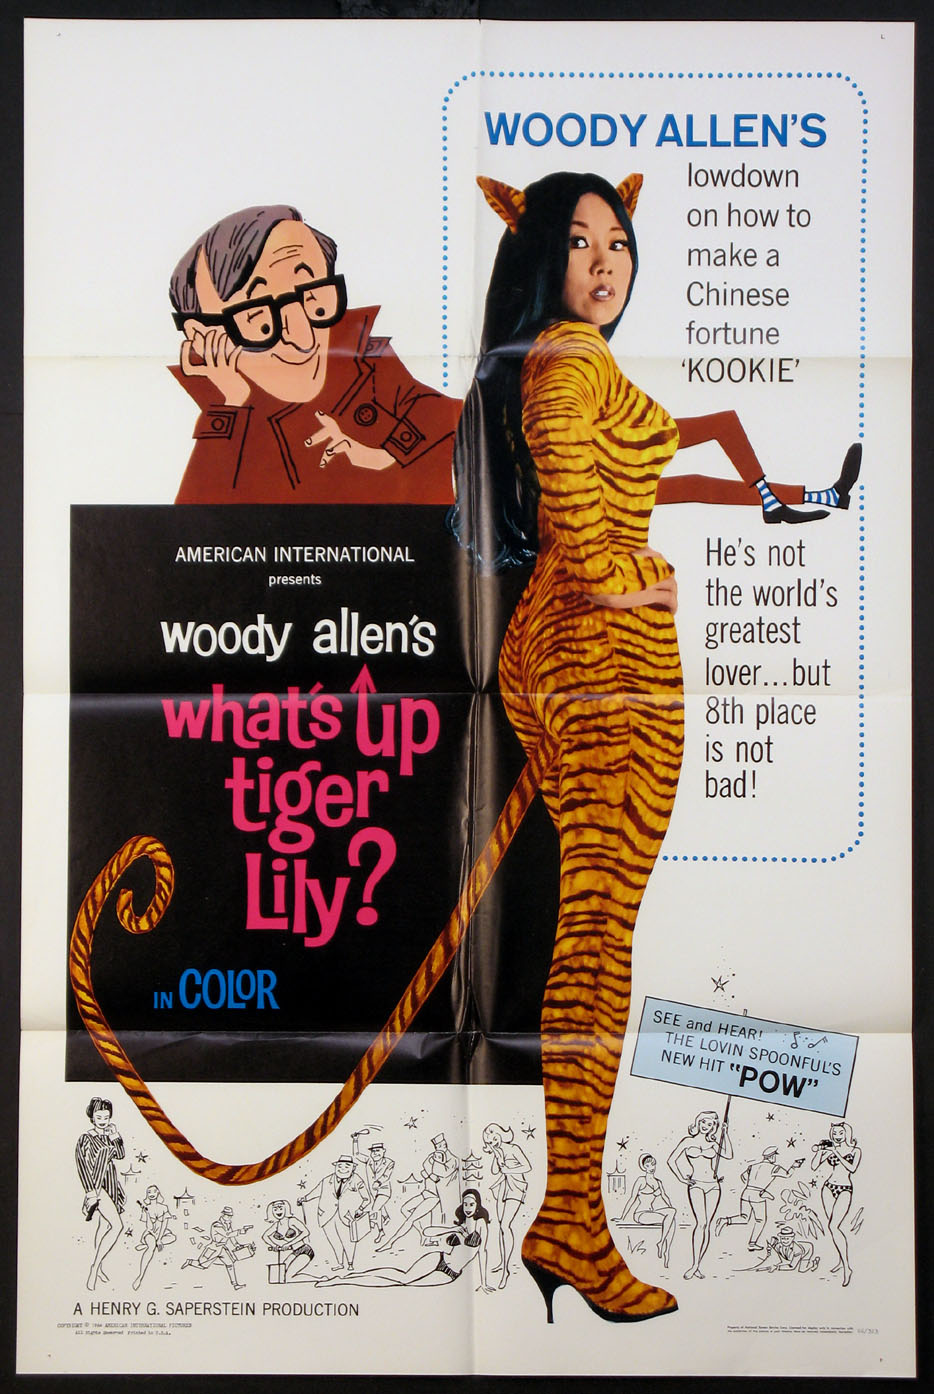 WHAT'S UP TIGER LILY? @ FilmPosters.com